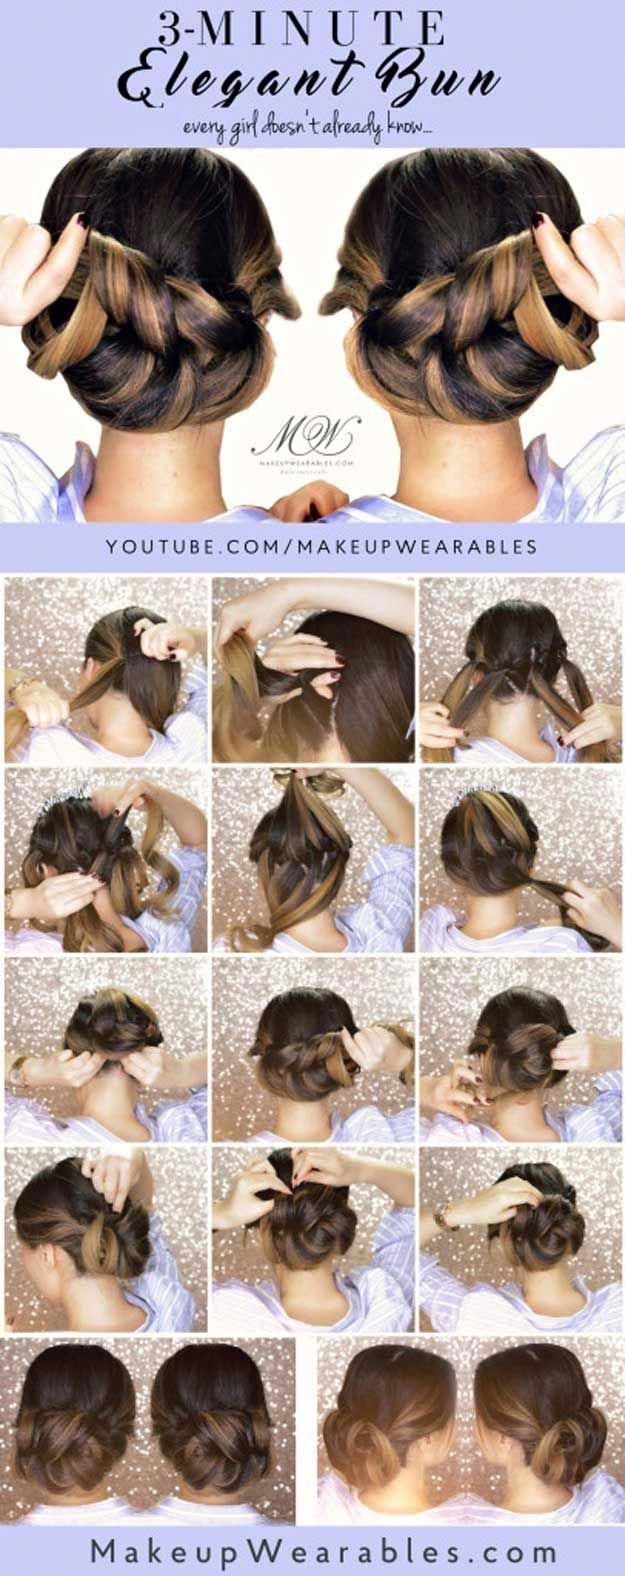 Best 5 Minute Hairstyles 5 Minute Hairstyles For Frizzy Hair Quick And Easy Easy Hairstyles Haircuts For Long Hair Long Hair Styles